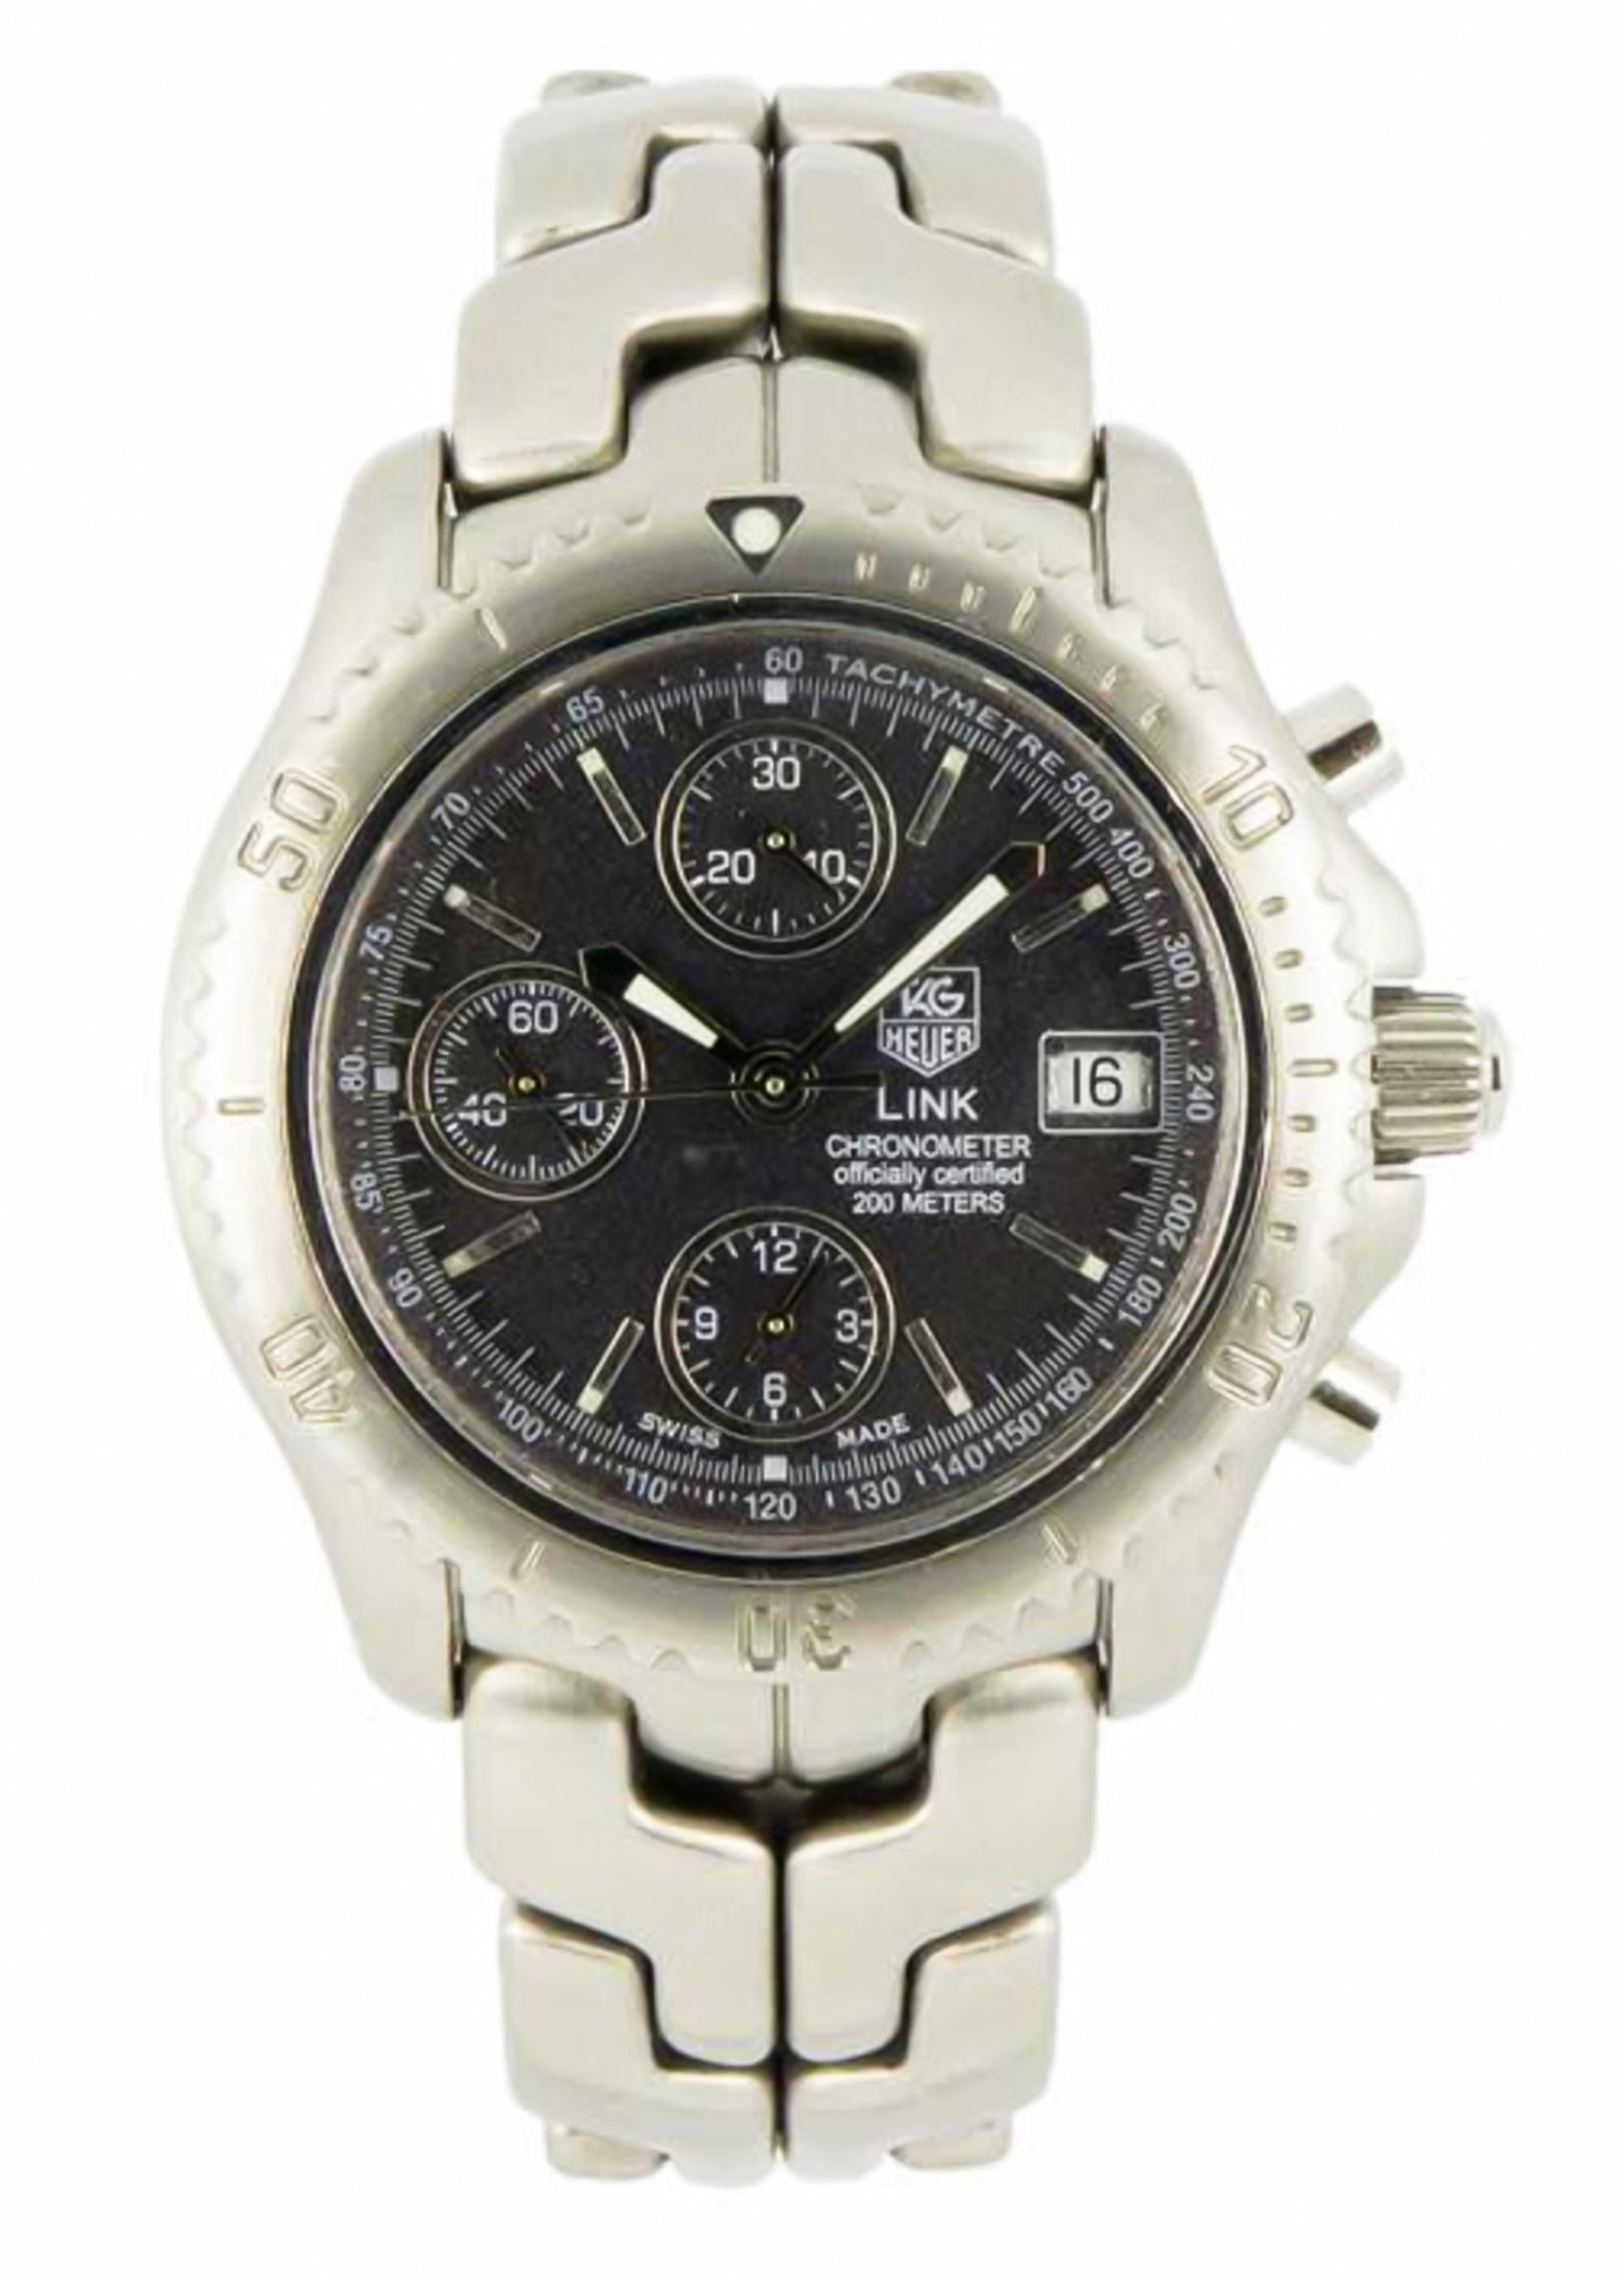 Tag Heuer Watches TAG HEUER LINK CT5110.BA0550